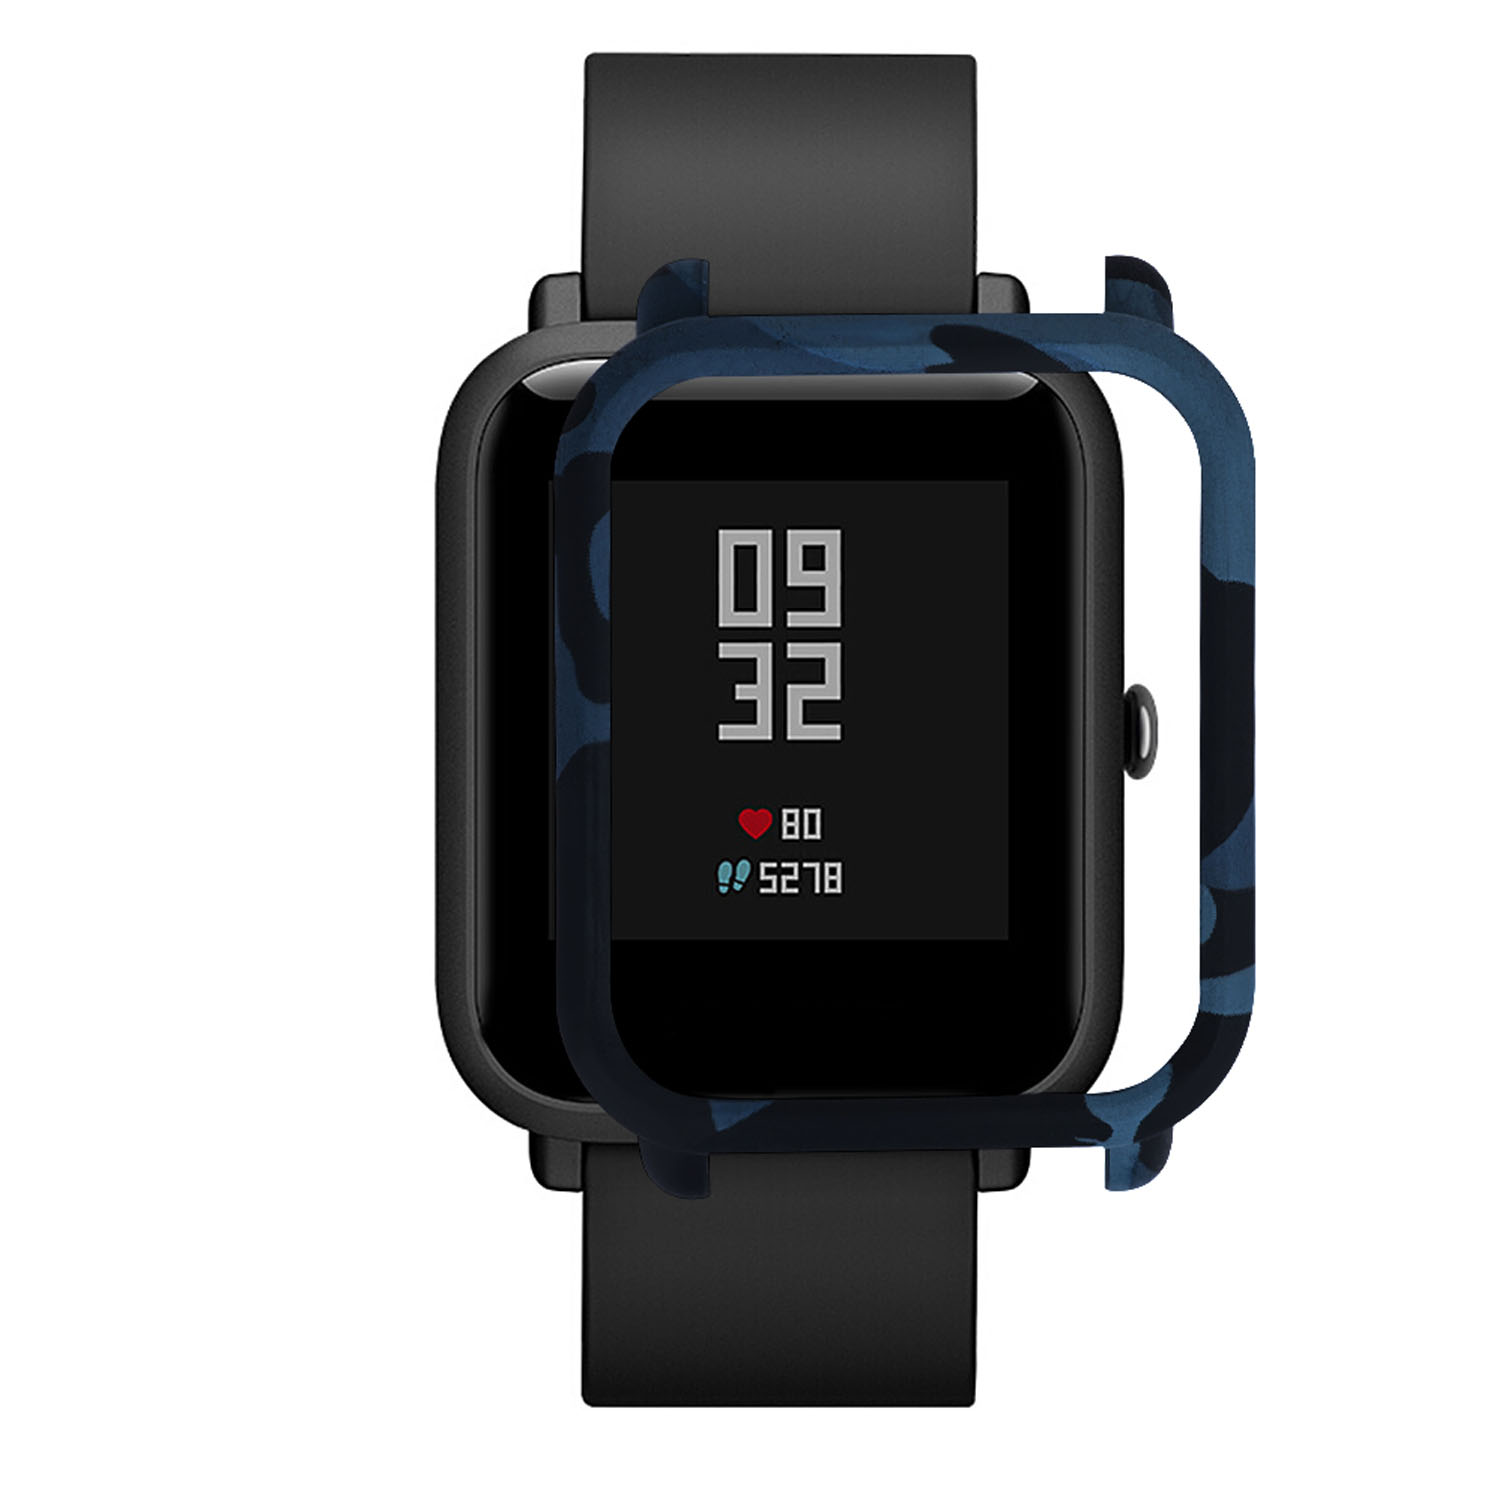 Gosear Protective Frame Case Protector Cover Shell Dust proof Anti scratch Accessories for Xiaomi Huami Amazfit Bip Youth Watch in Smart Accessories from